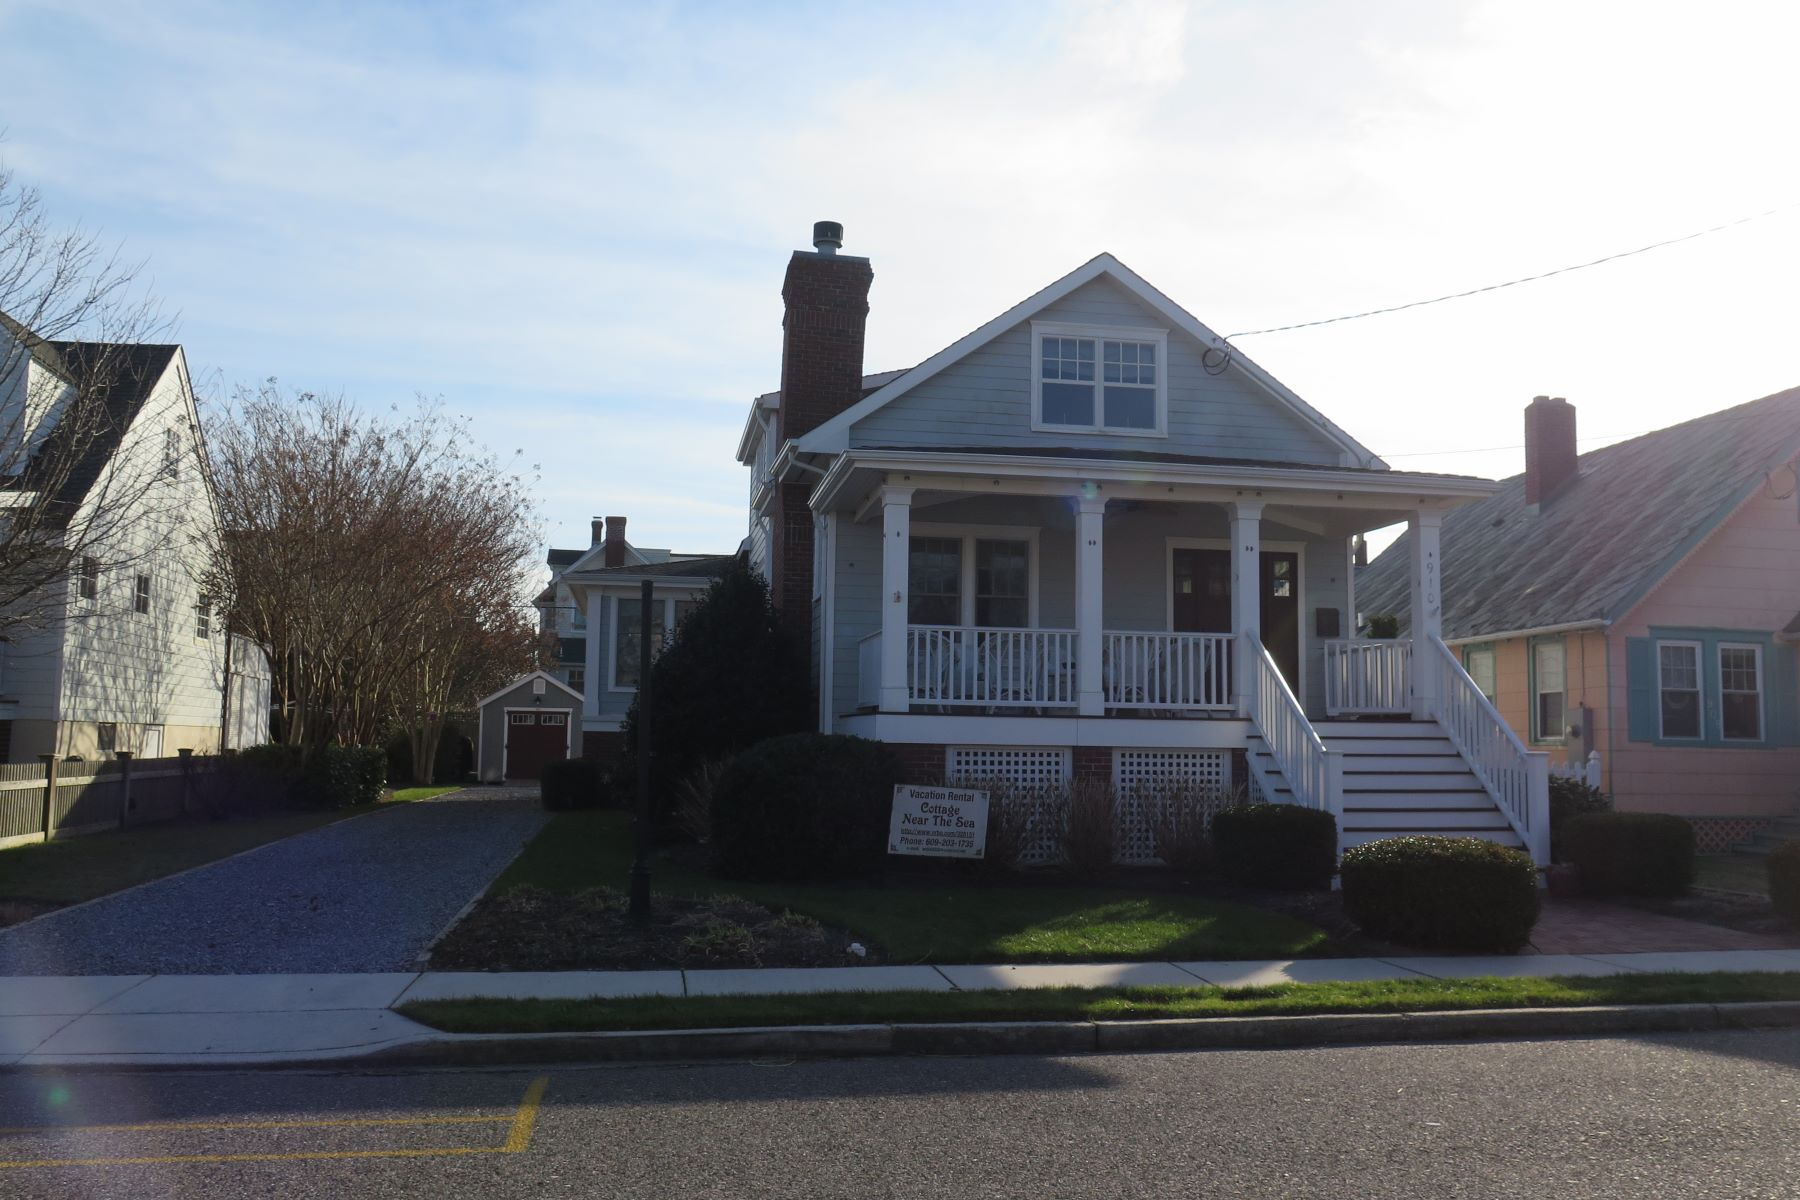 Single Family Home for Sale at 910 Stockton 910 Stockton AVe Cape May, New Jersey 08204 United States